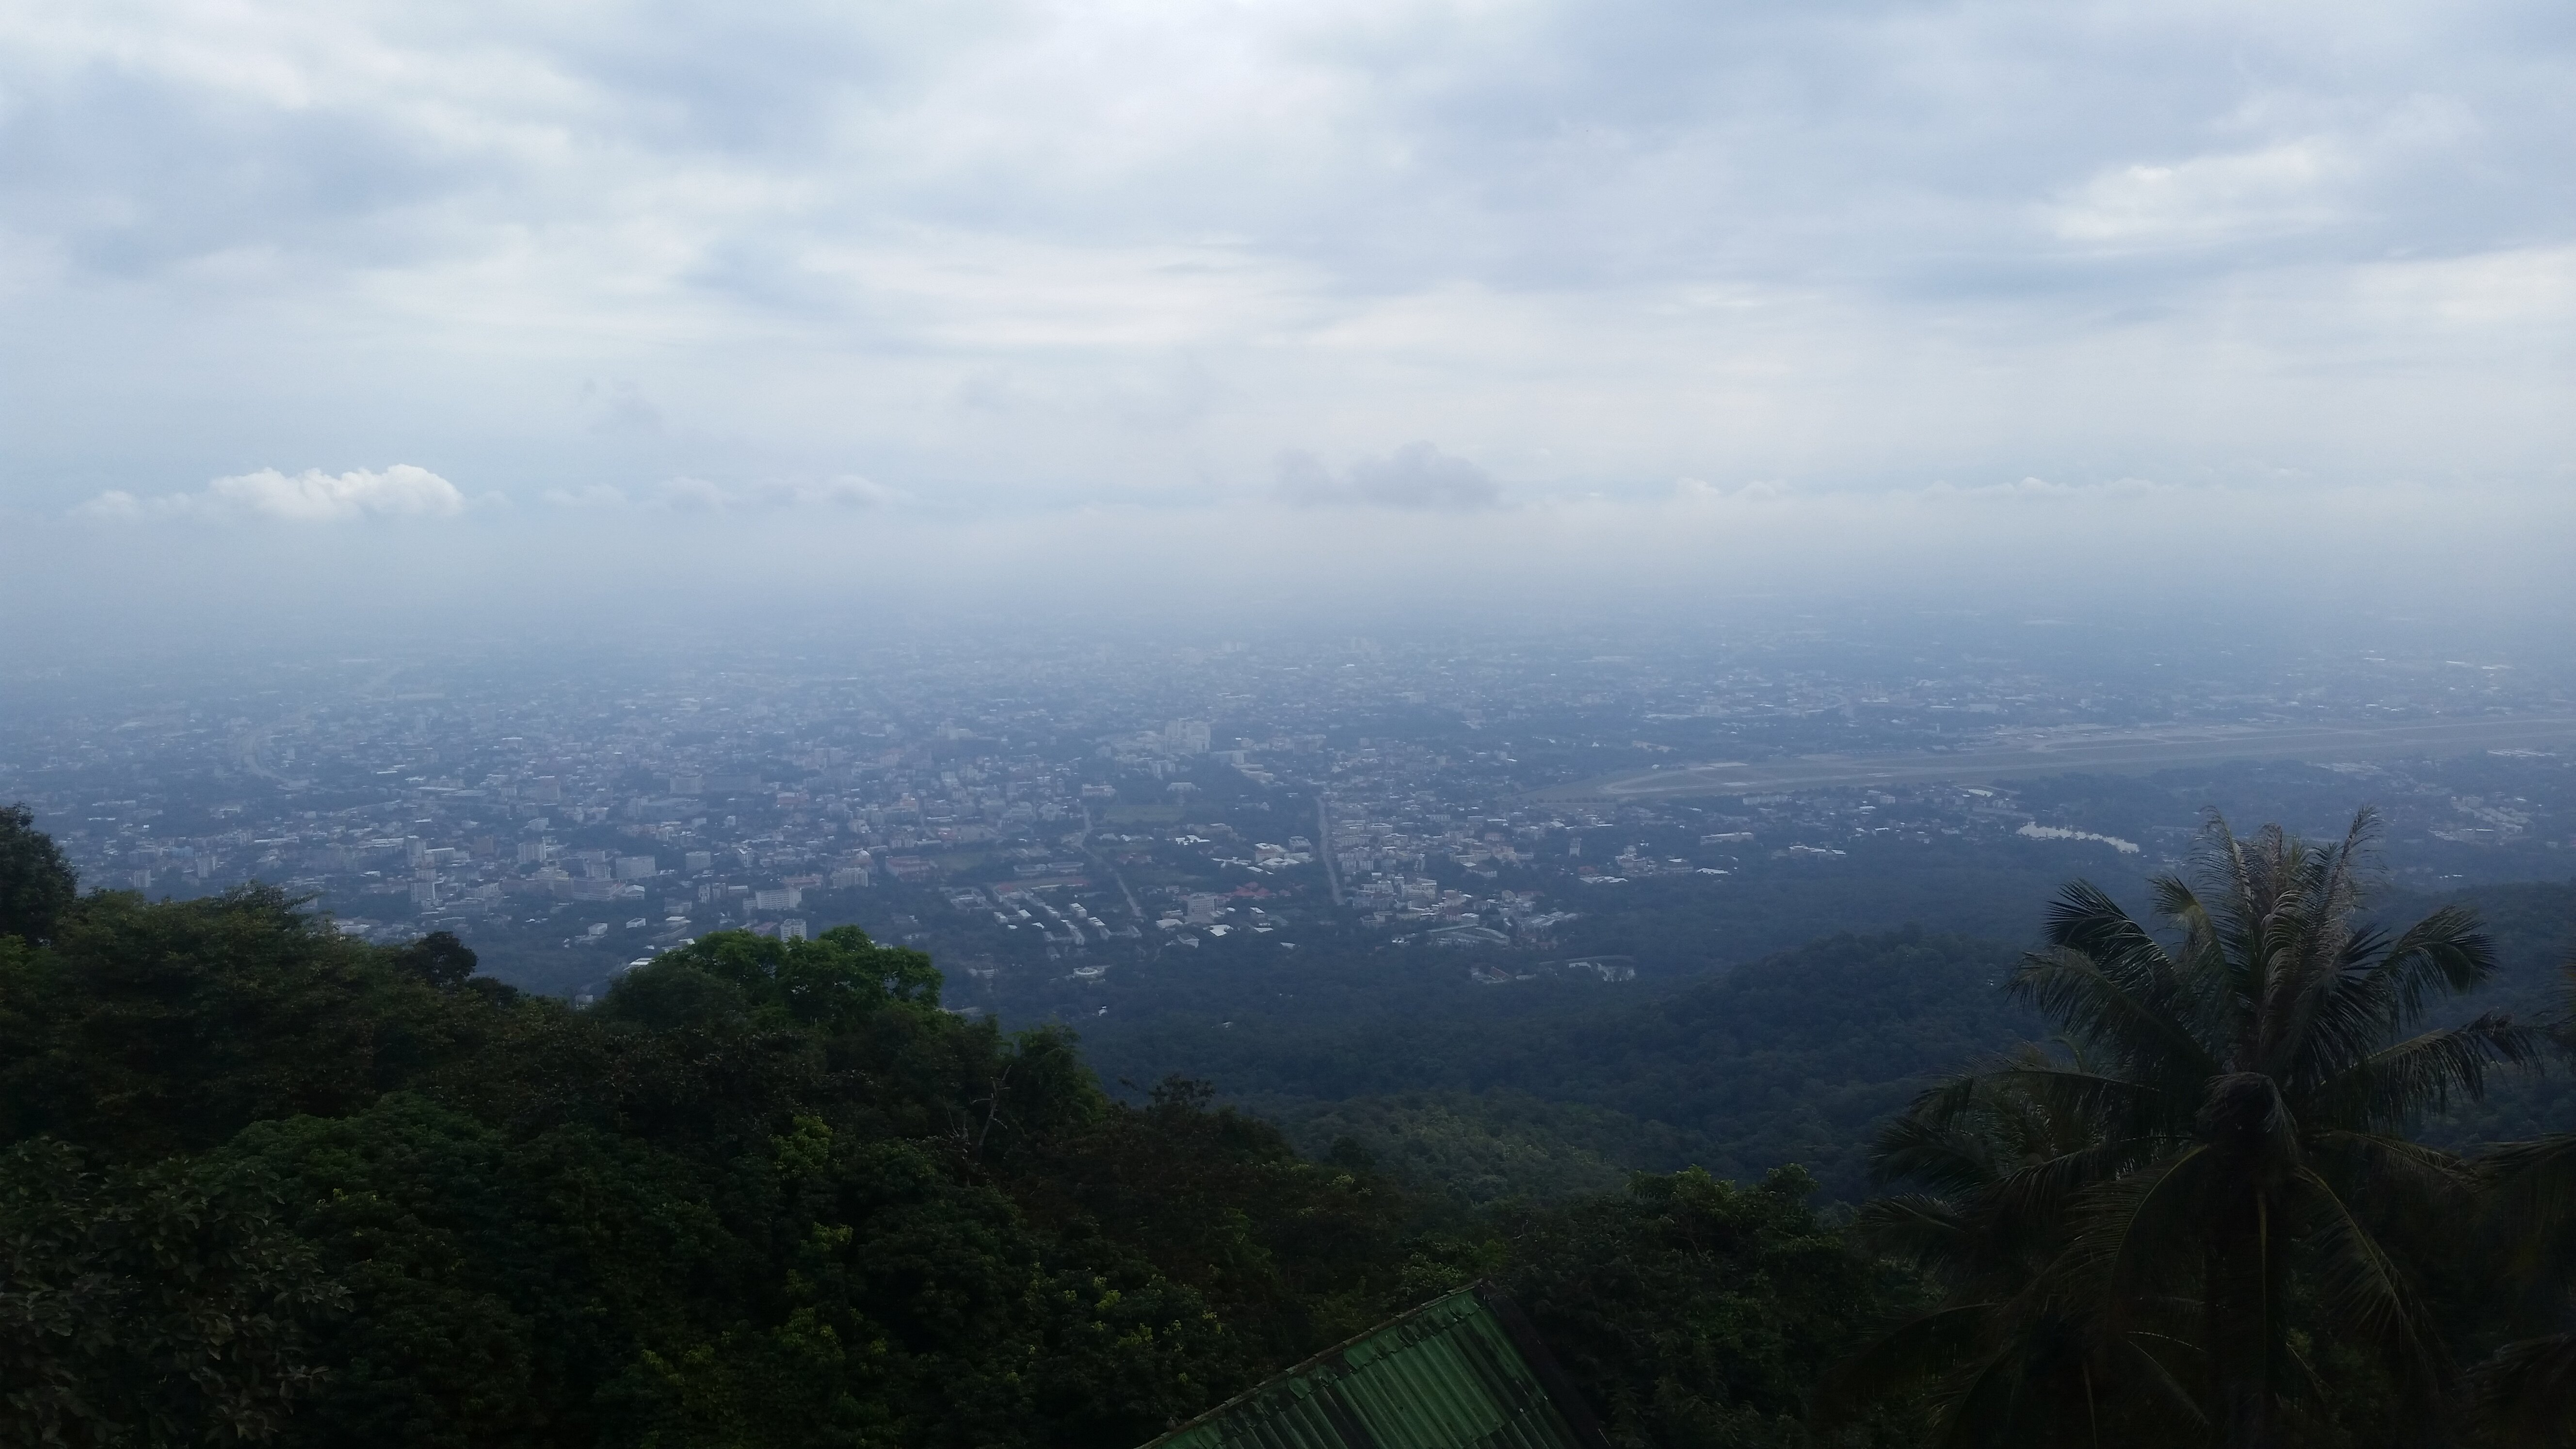 The view of Chiang Mai from Doi Suthep.